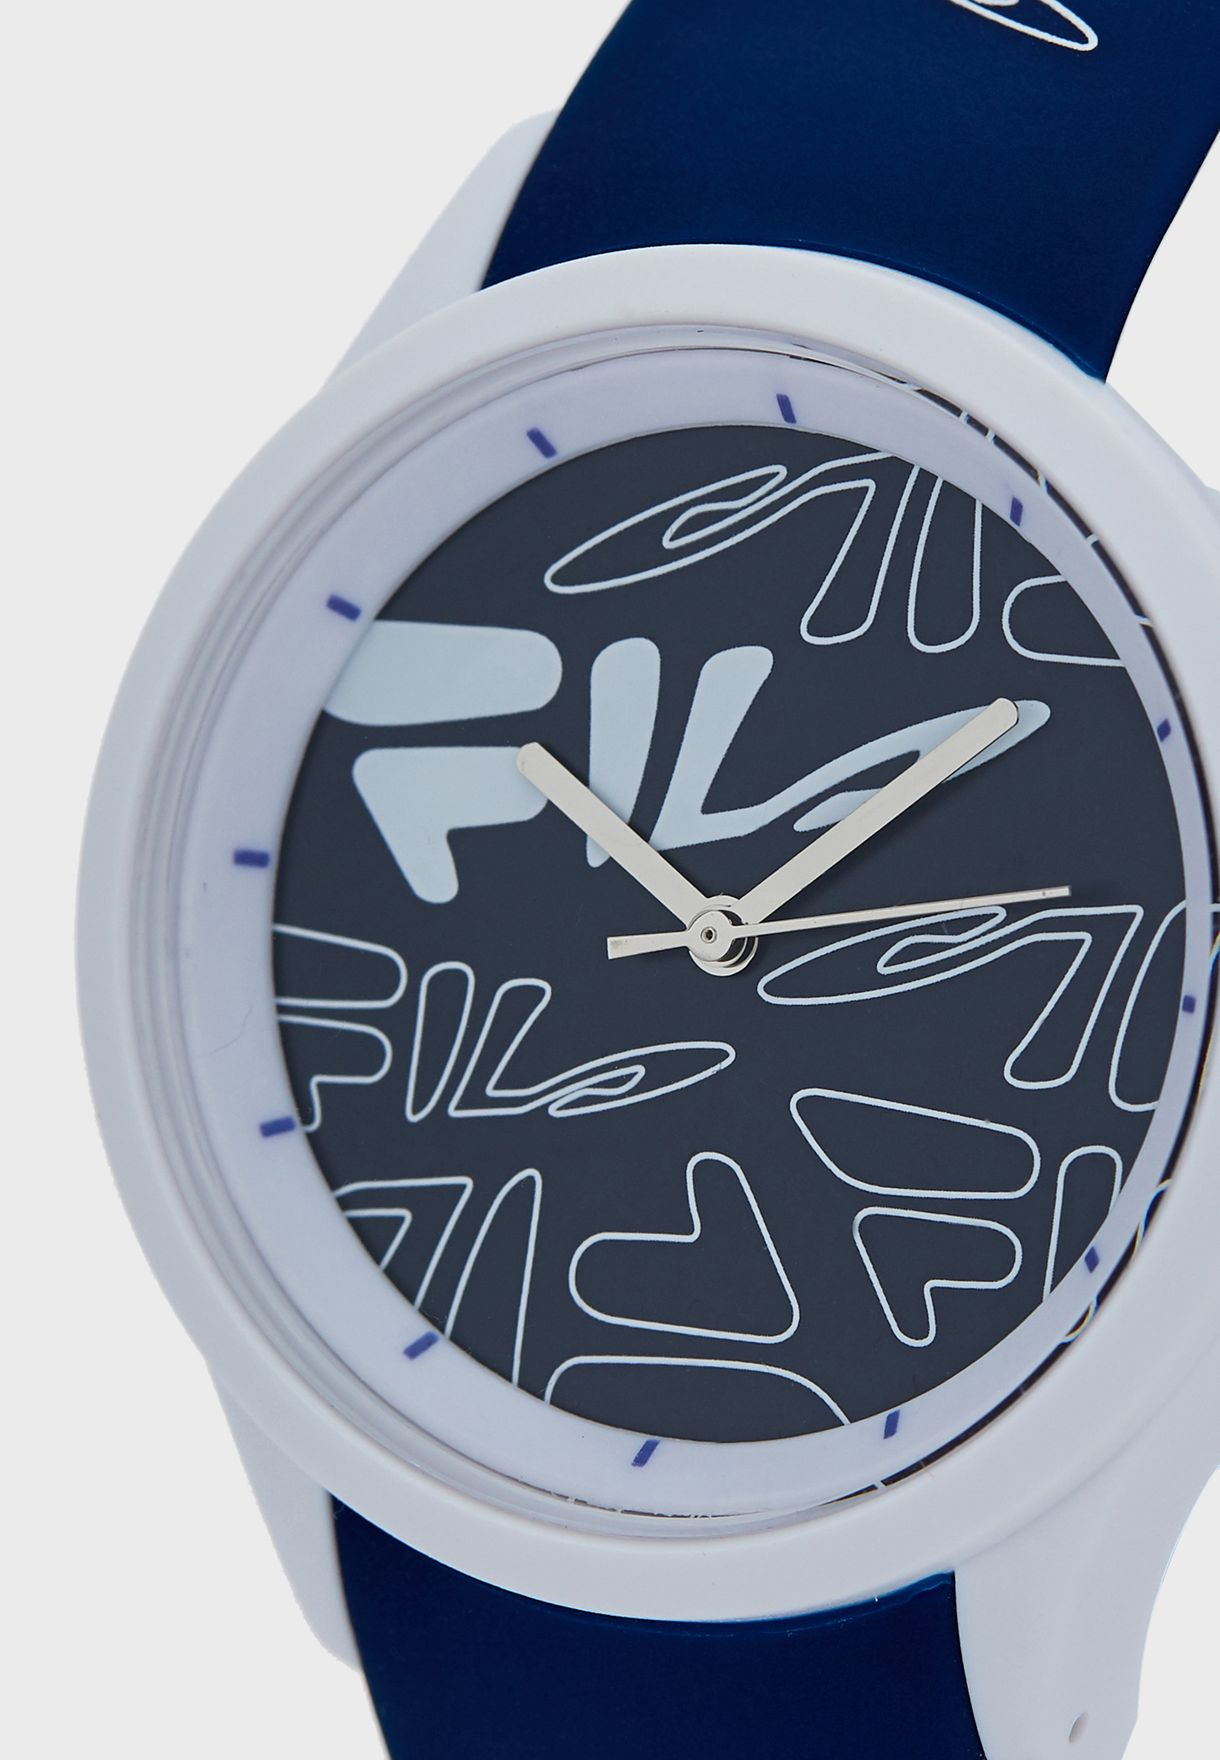 Miyota 2035 Watch